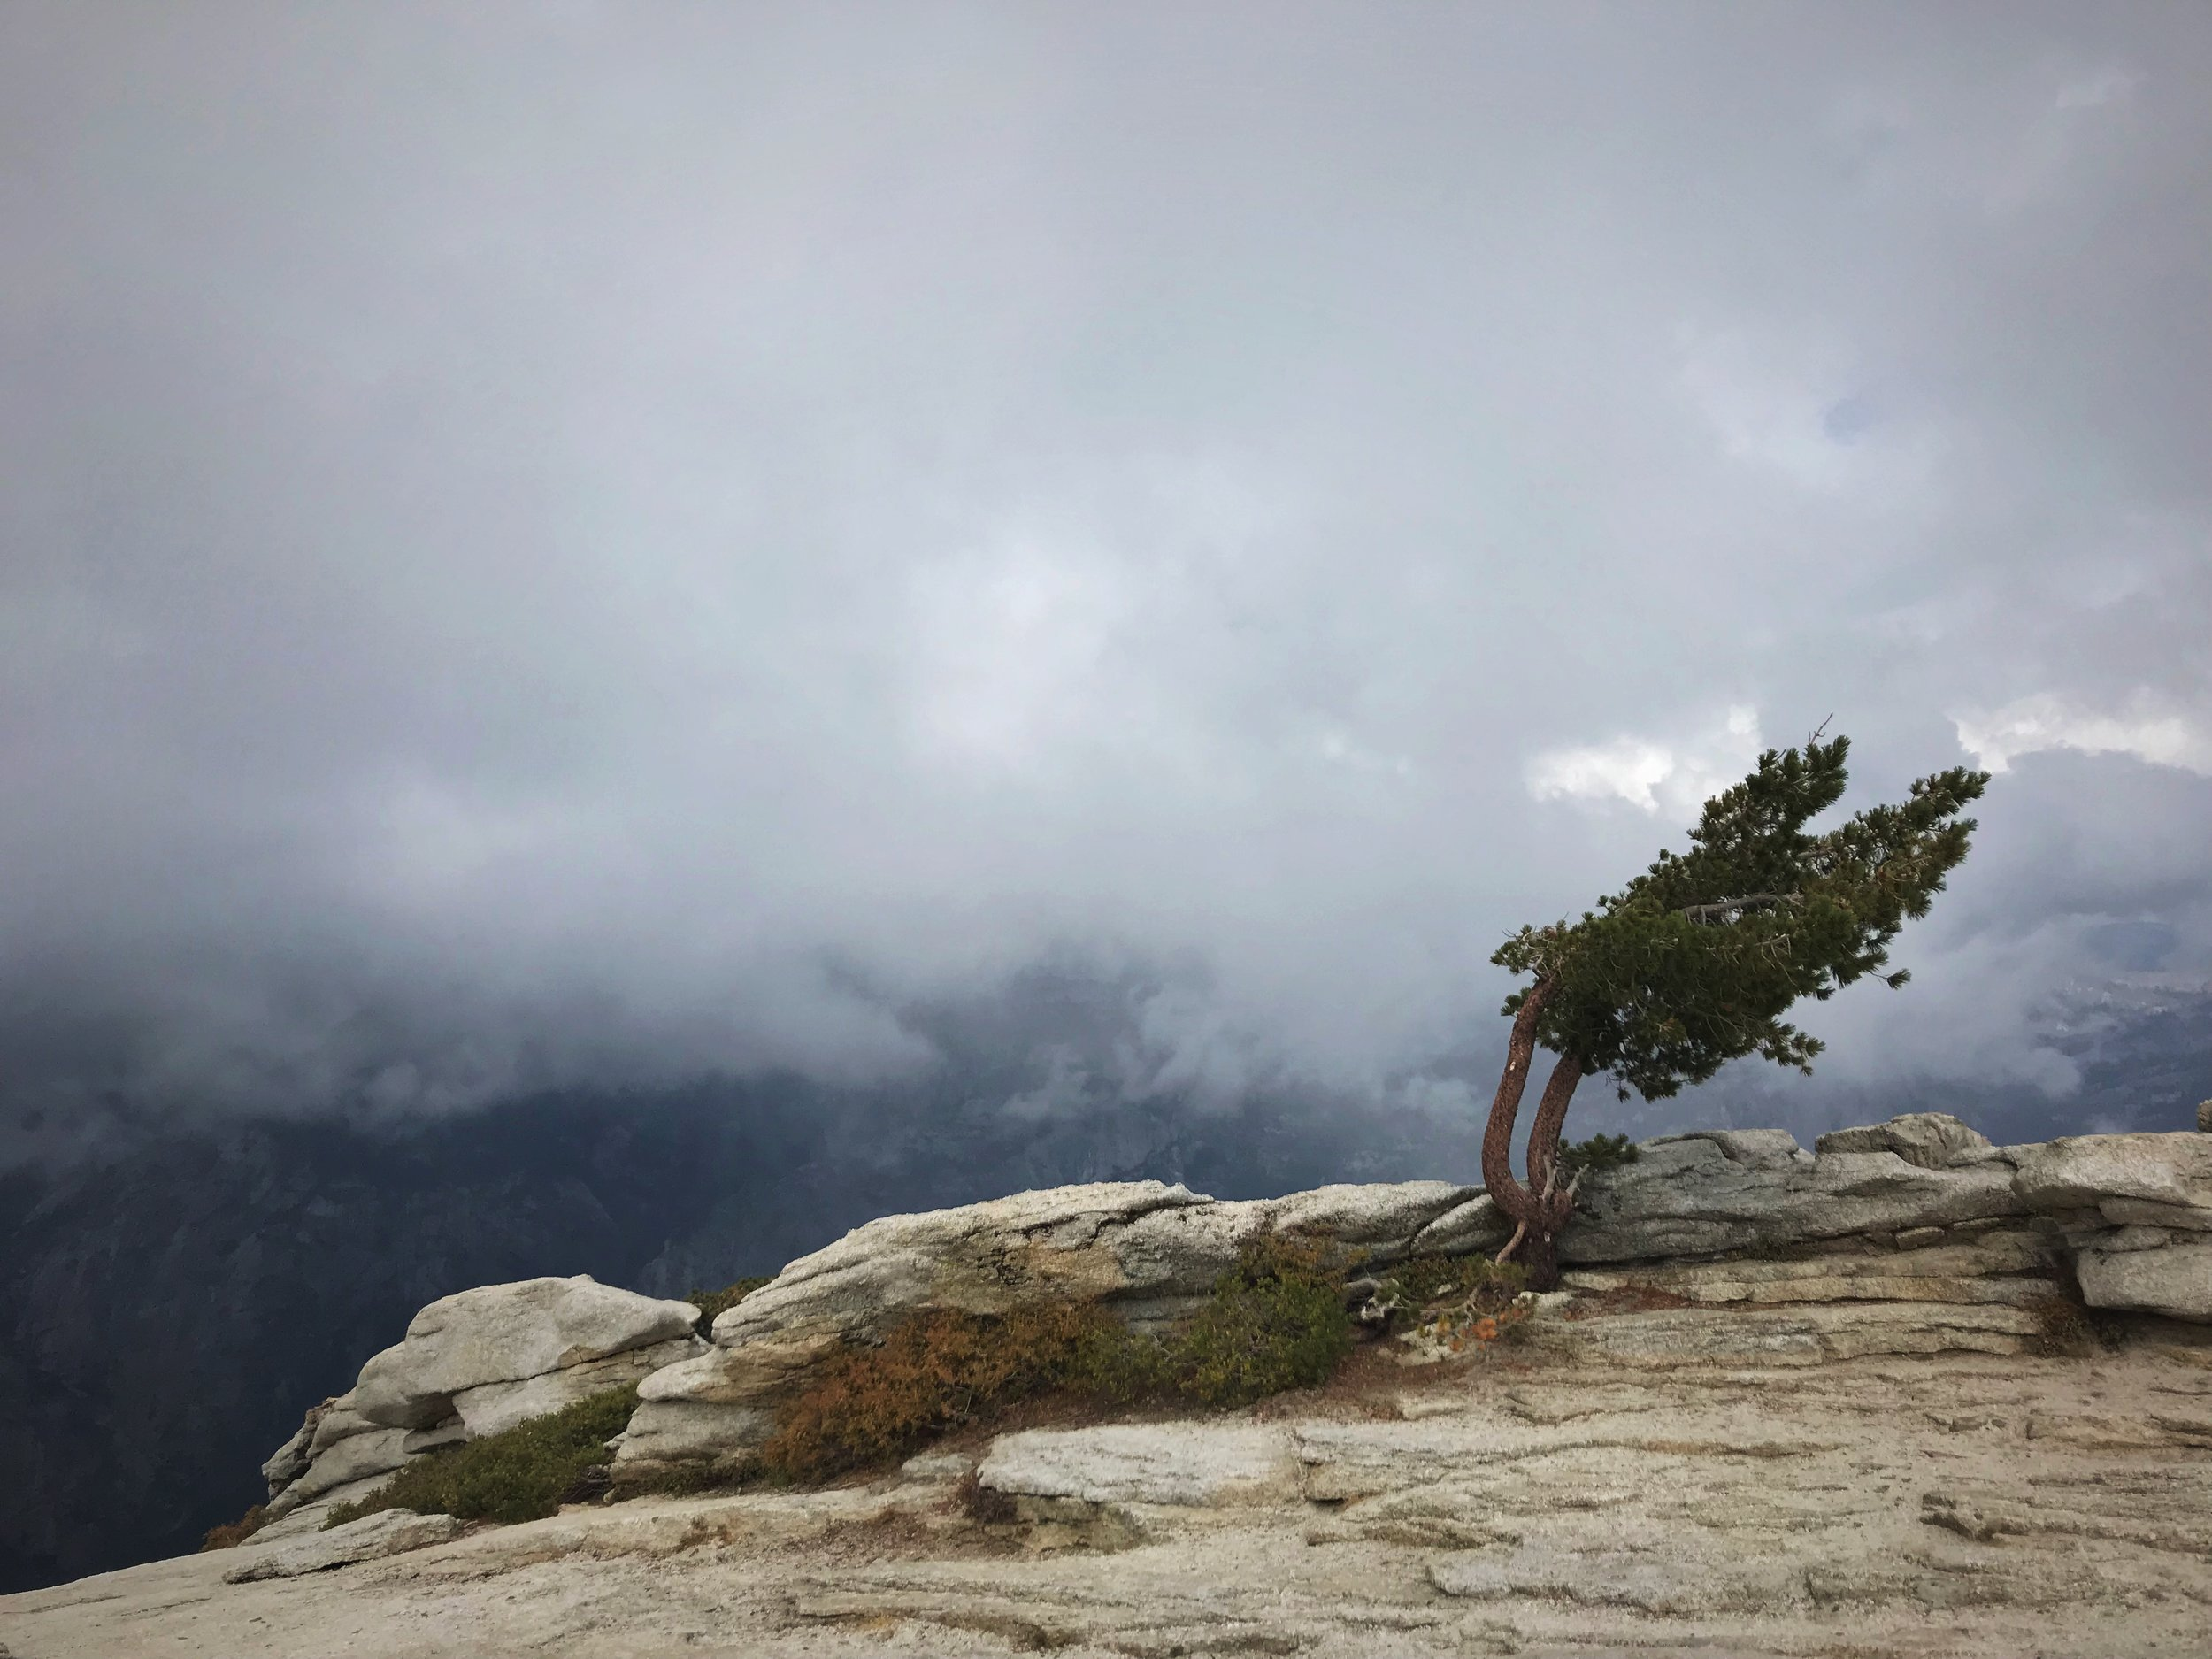 Another windblown pine on top of Sentinel Dome.